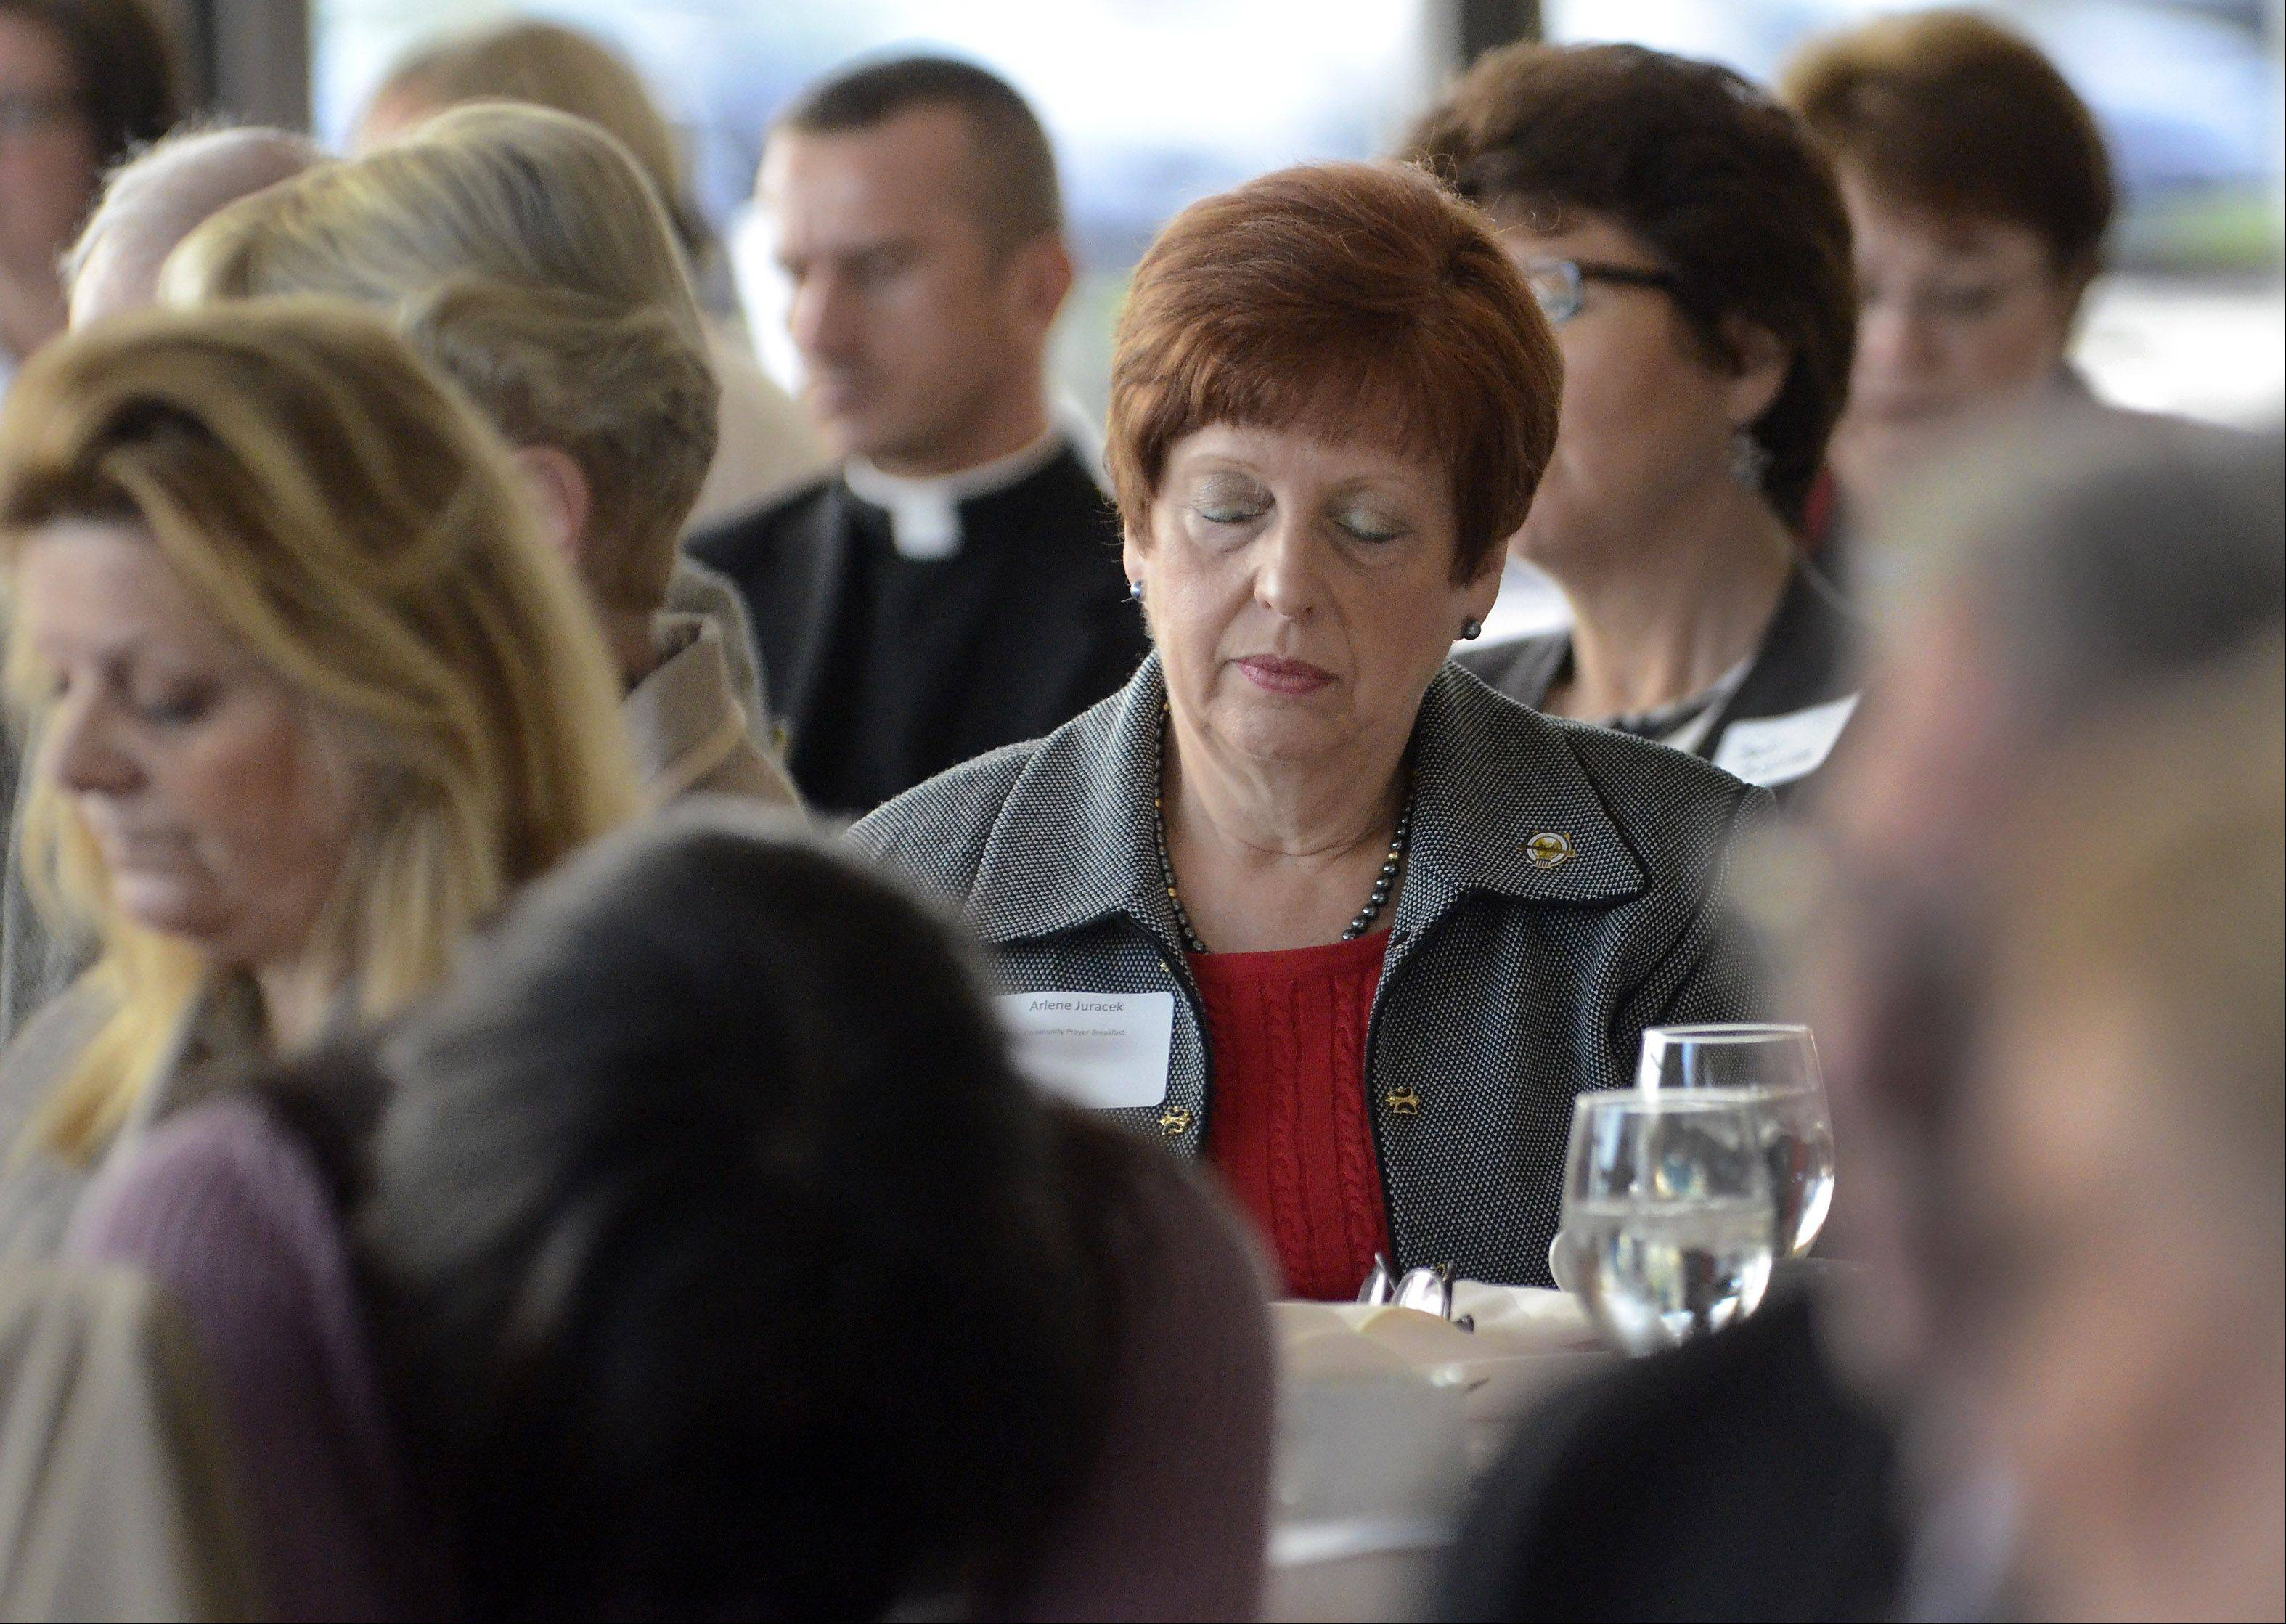 Incoming Mount Prospect Mayor Arlene Juracek prays Thursday at the village's annual Community Prayer Breakfast.